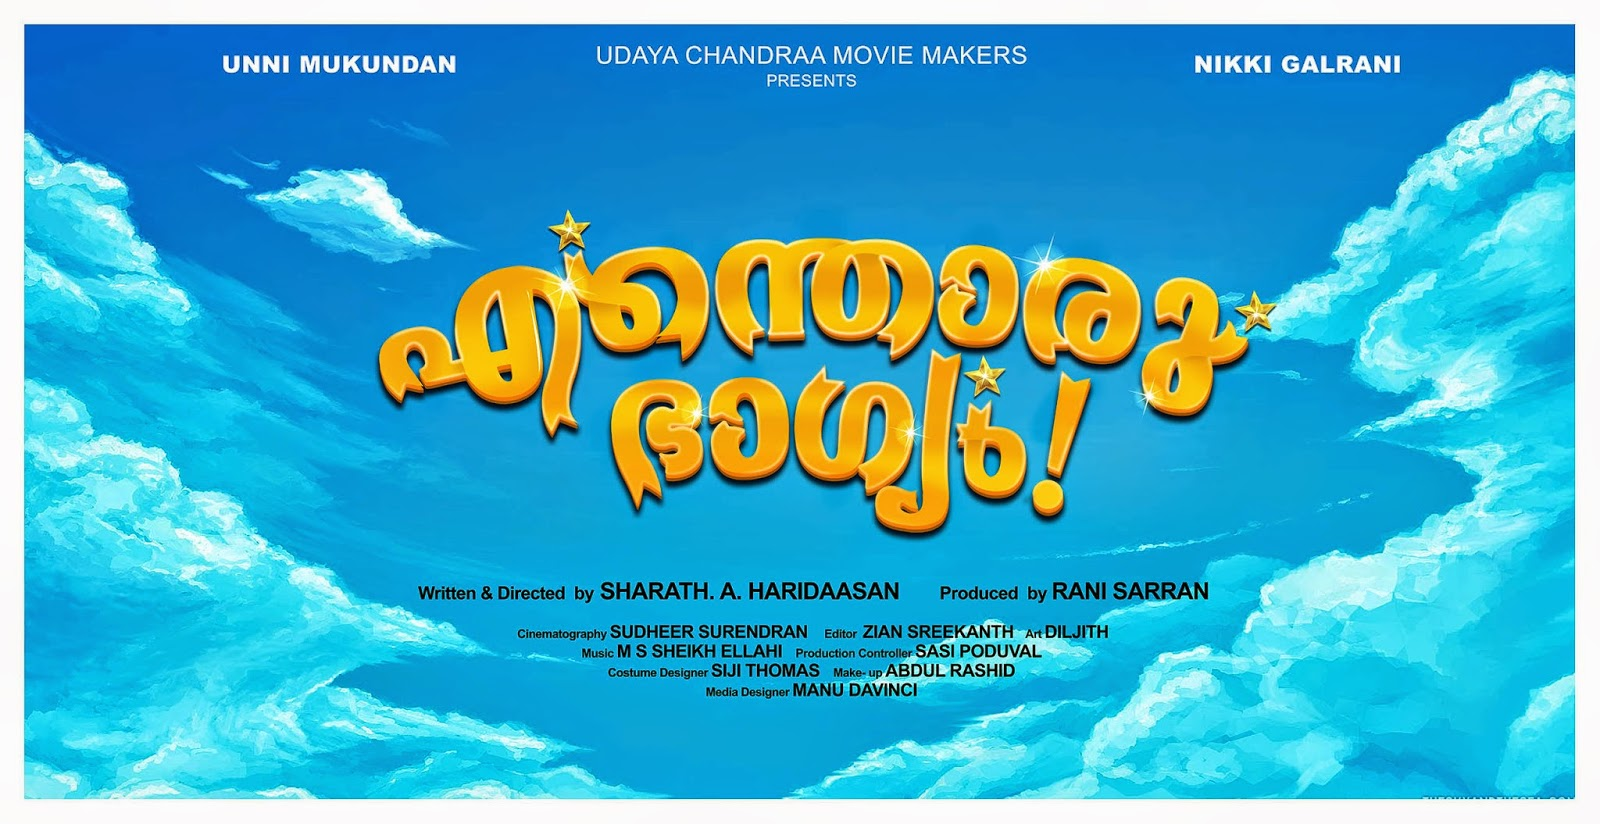 'Enthoru Bhagyam' Malayalam movie gets shelved